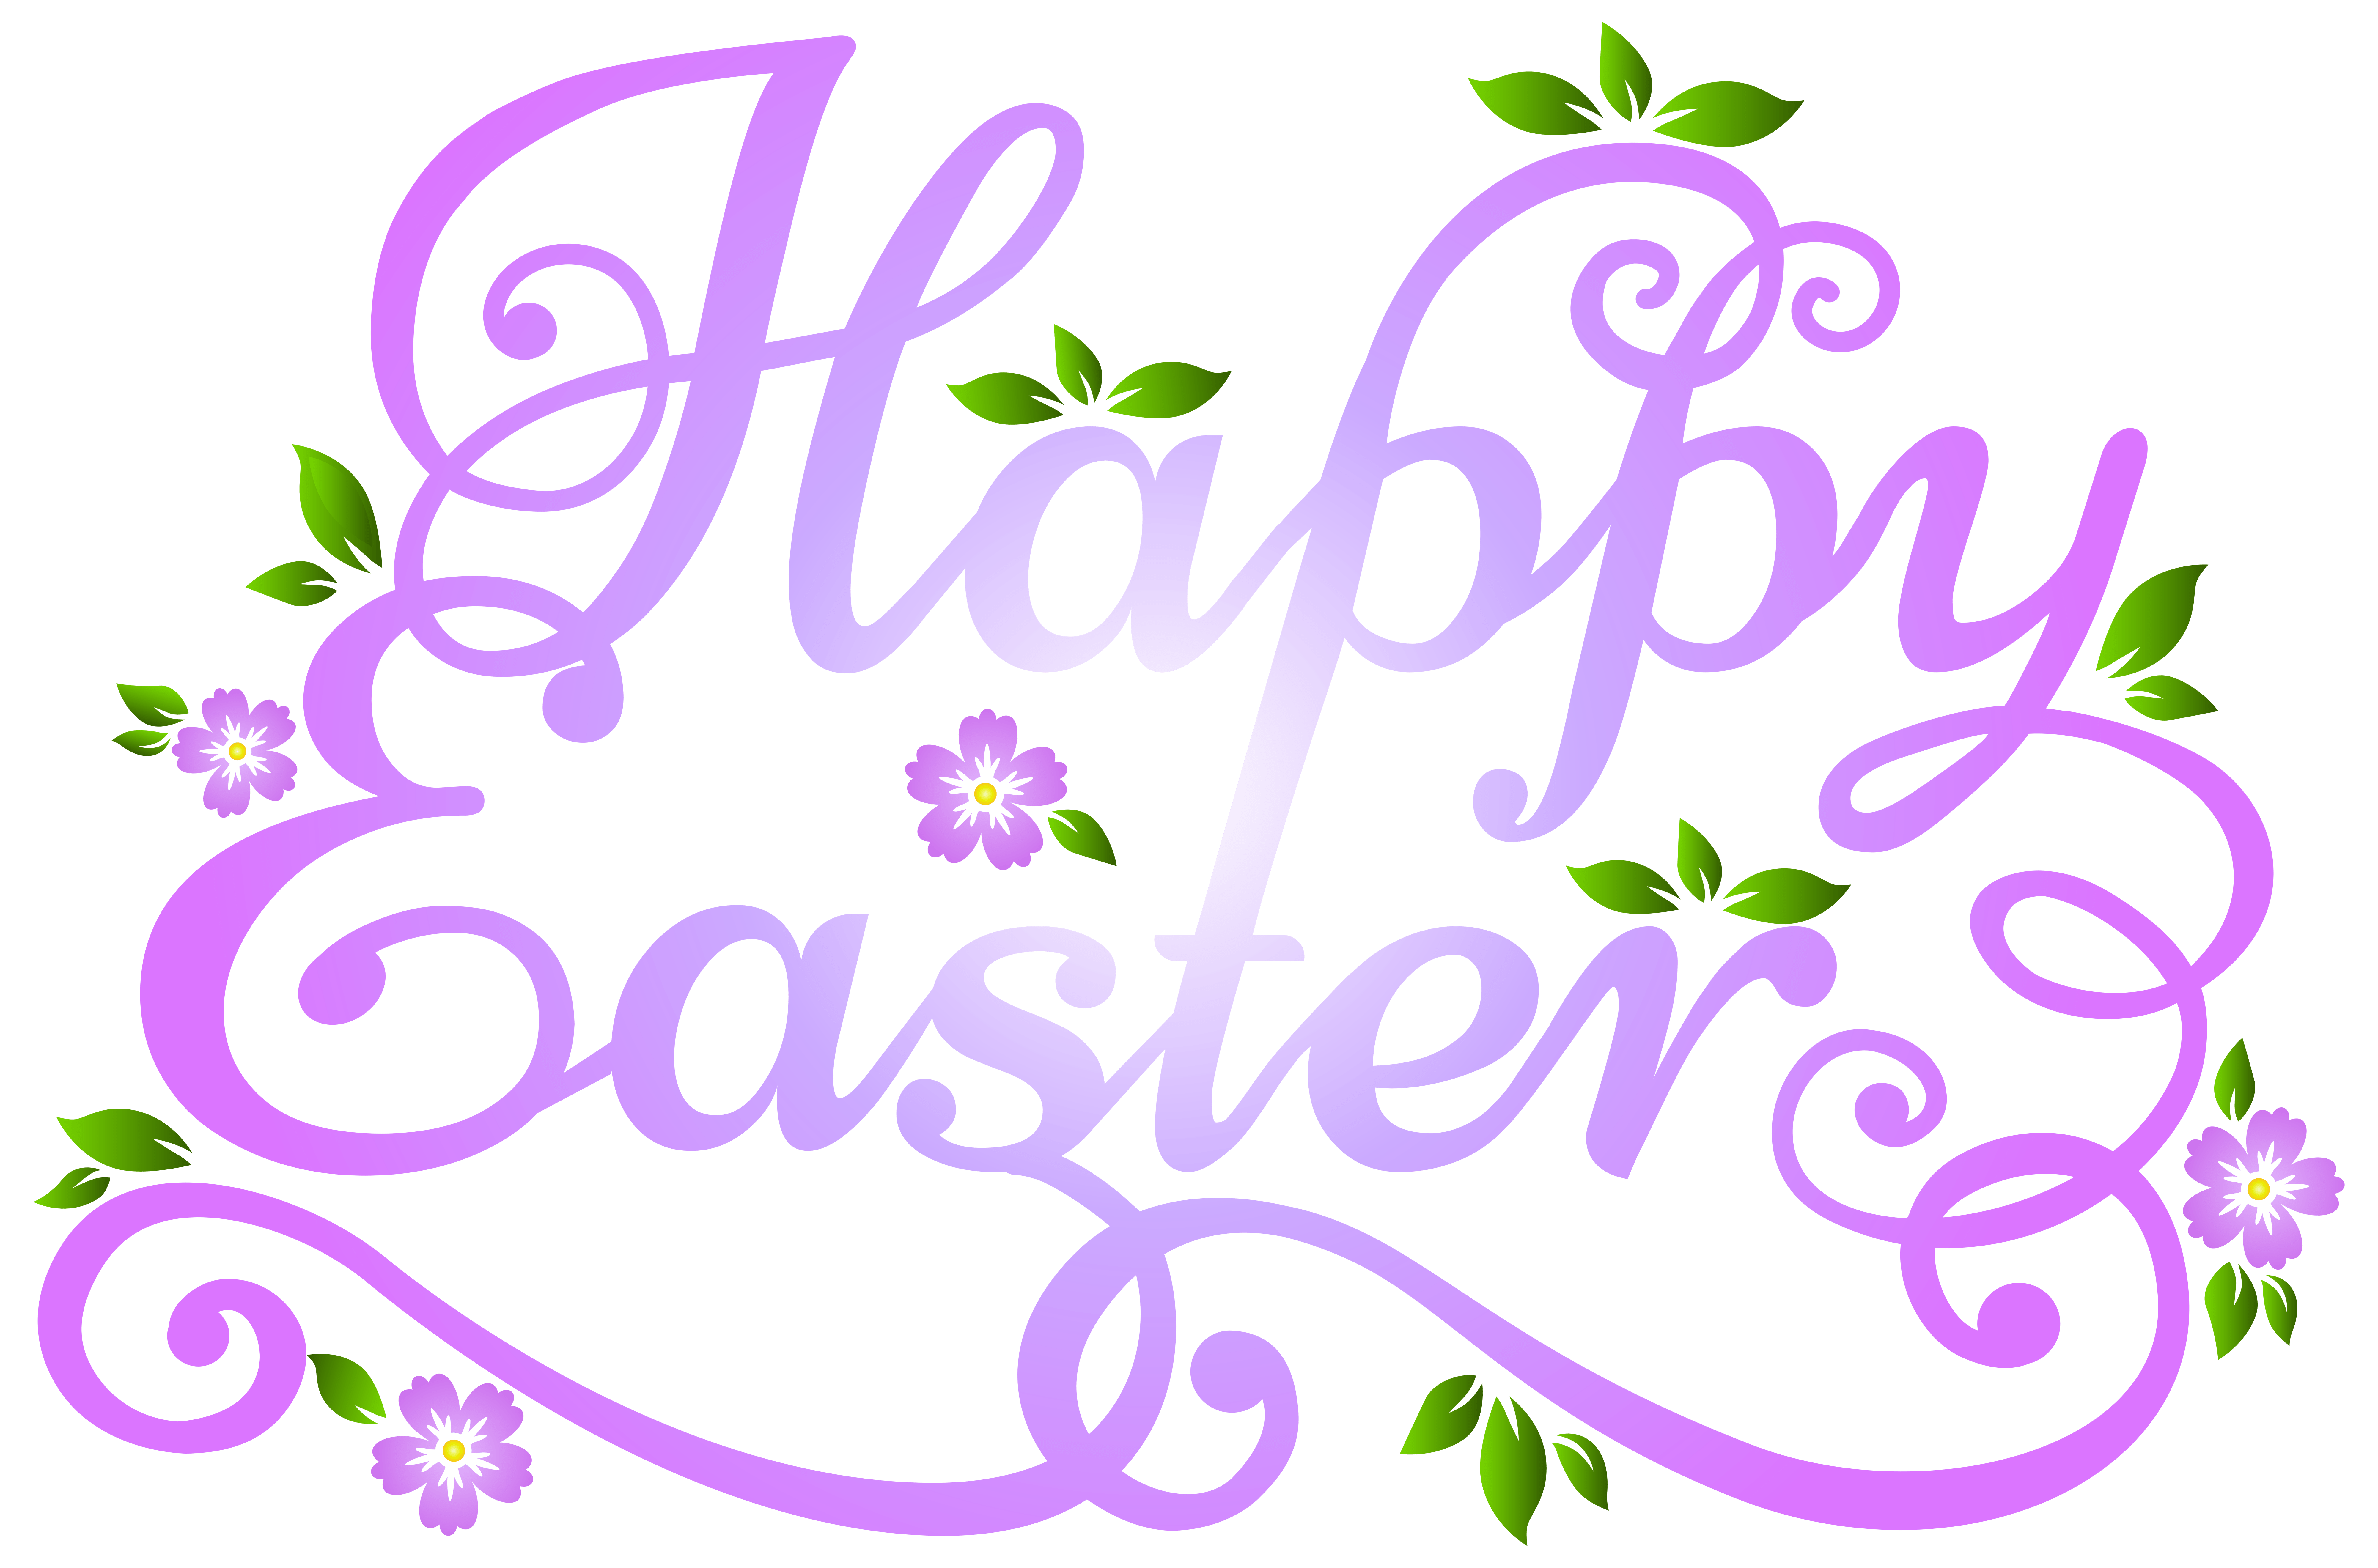 Happy easter clipart catholic. Purple cross clip art